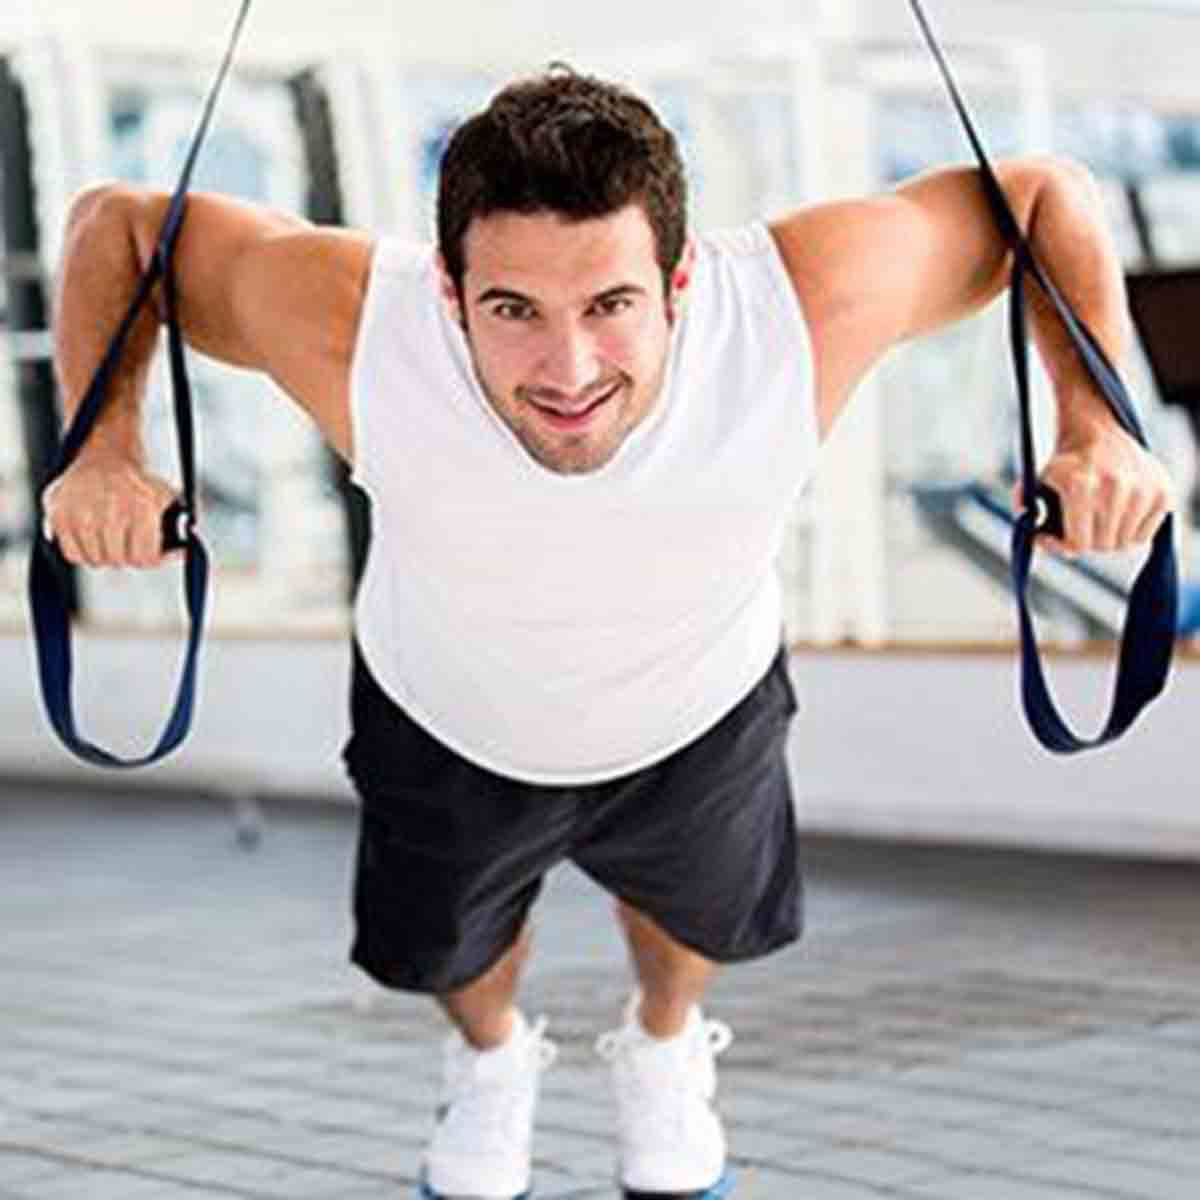 3 Health Benefits Of Losing Weight, physical health, gym resistance training